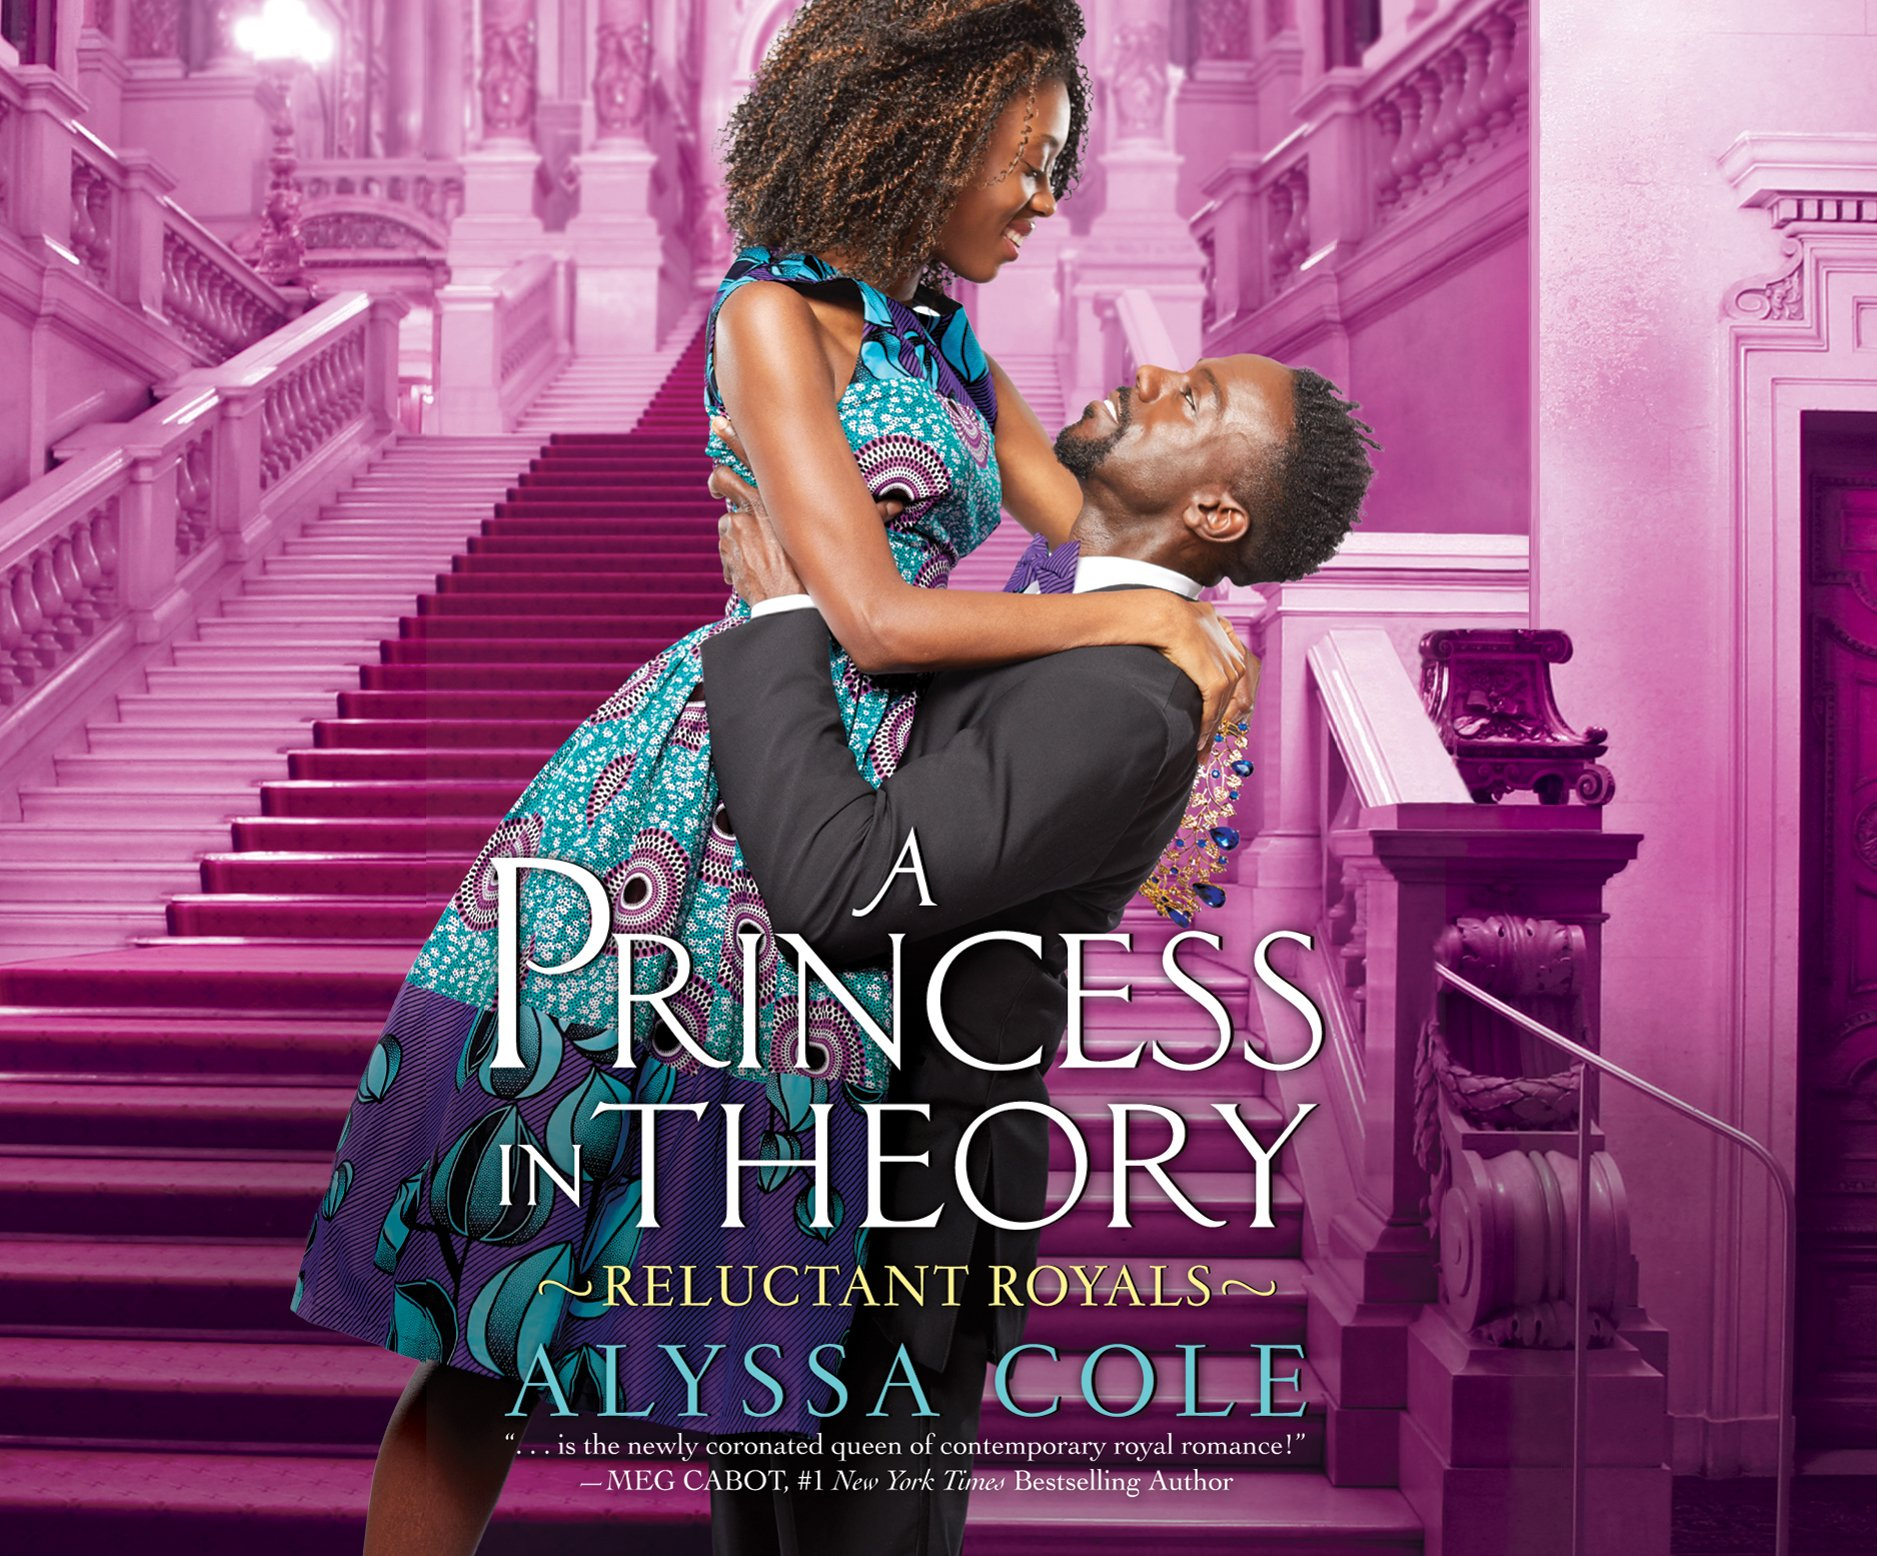 A Princess in Theory (Reluctant Royals)